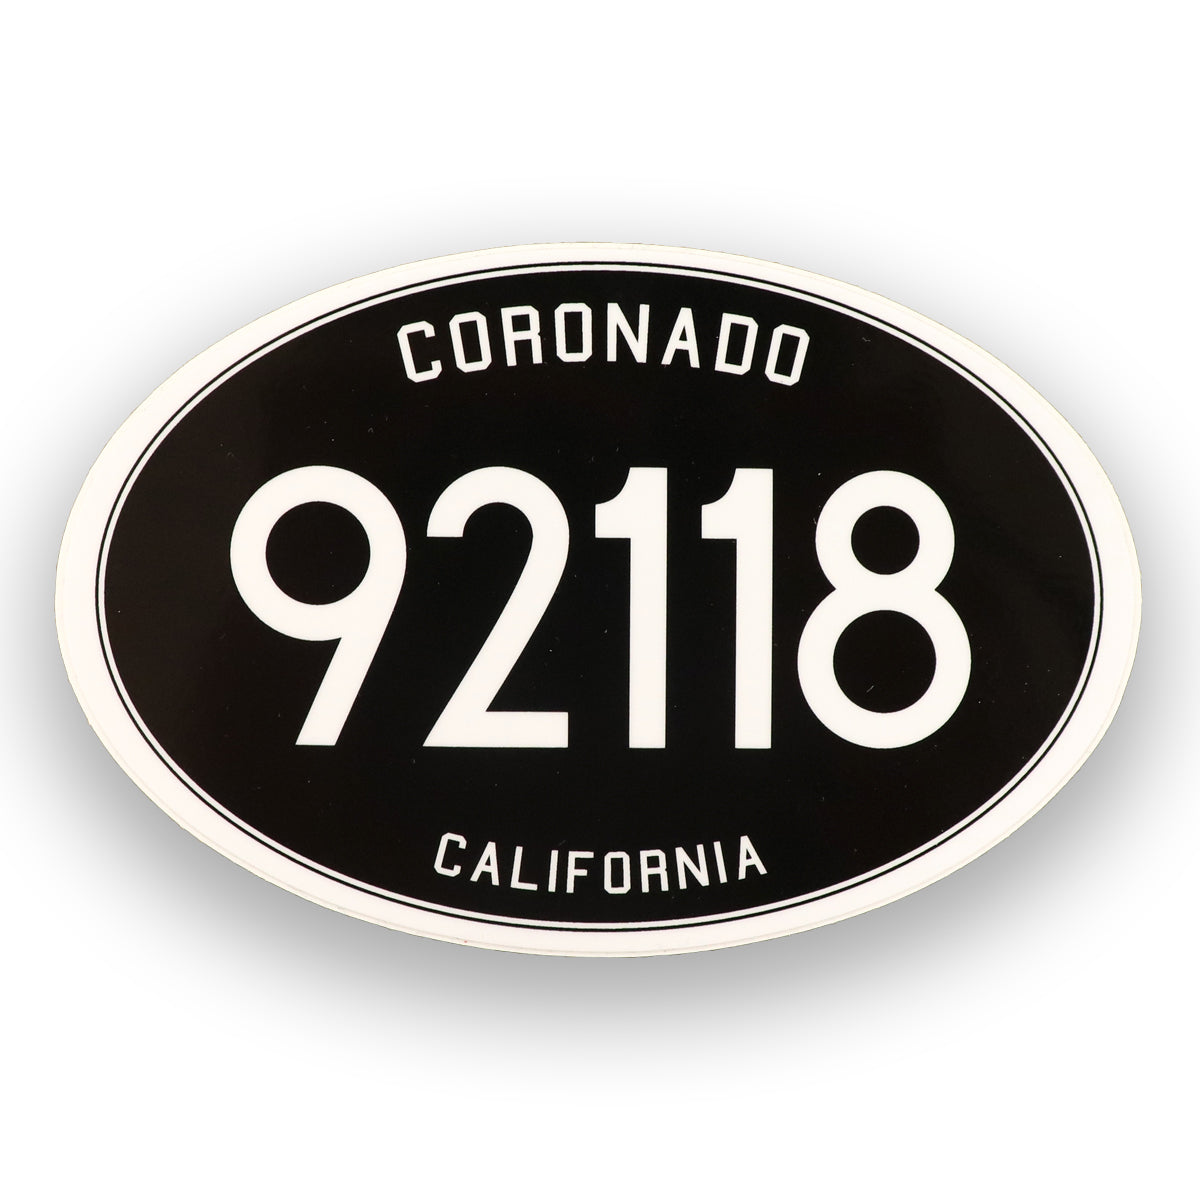 Coronado California Sticker. Classic black and white 92118 sticker. Black oval with Coronado white letters above and 92118 number in the middle and California on the bottom. Sold by SDTrading Co.